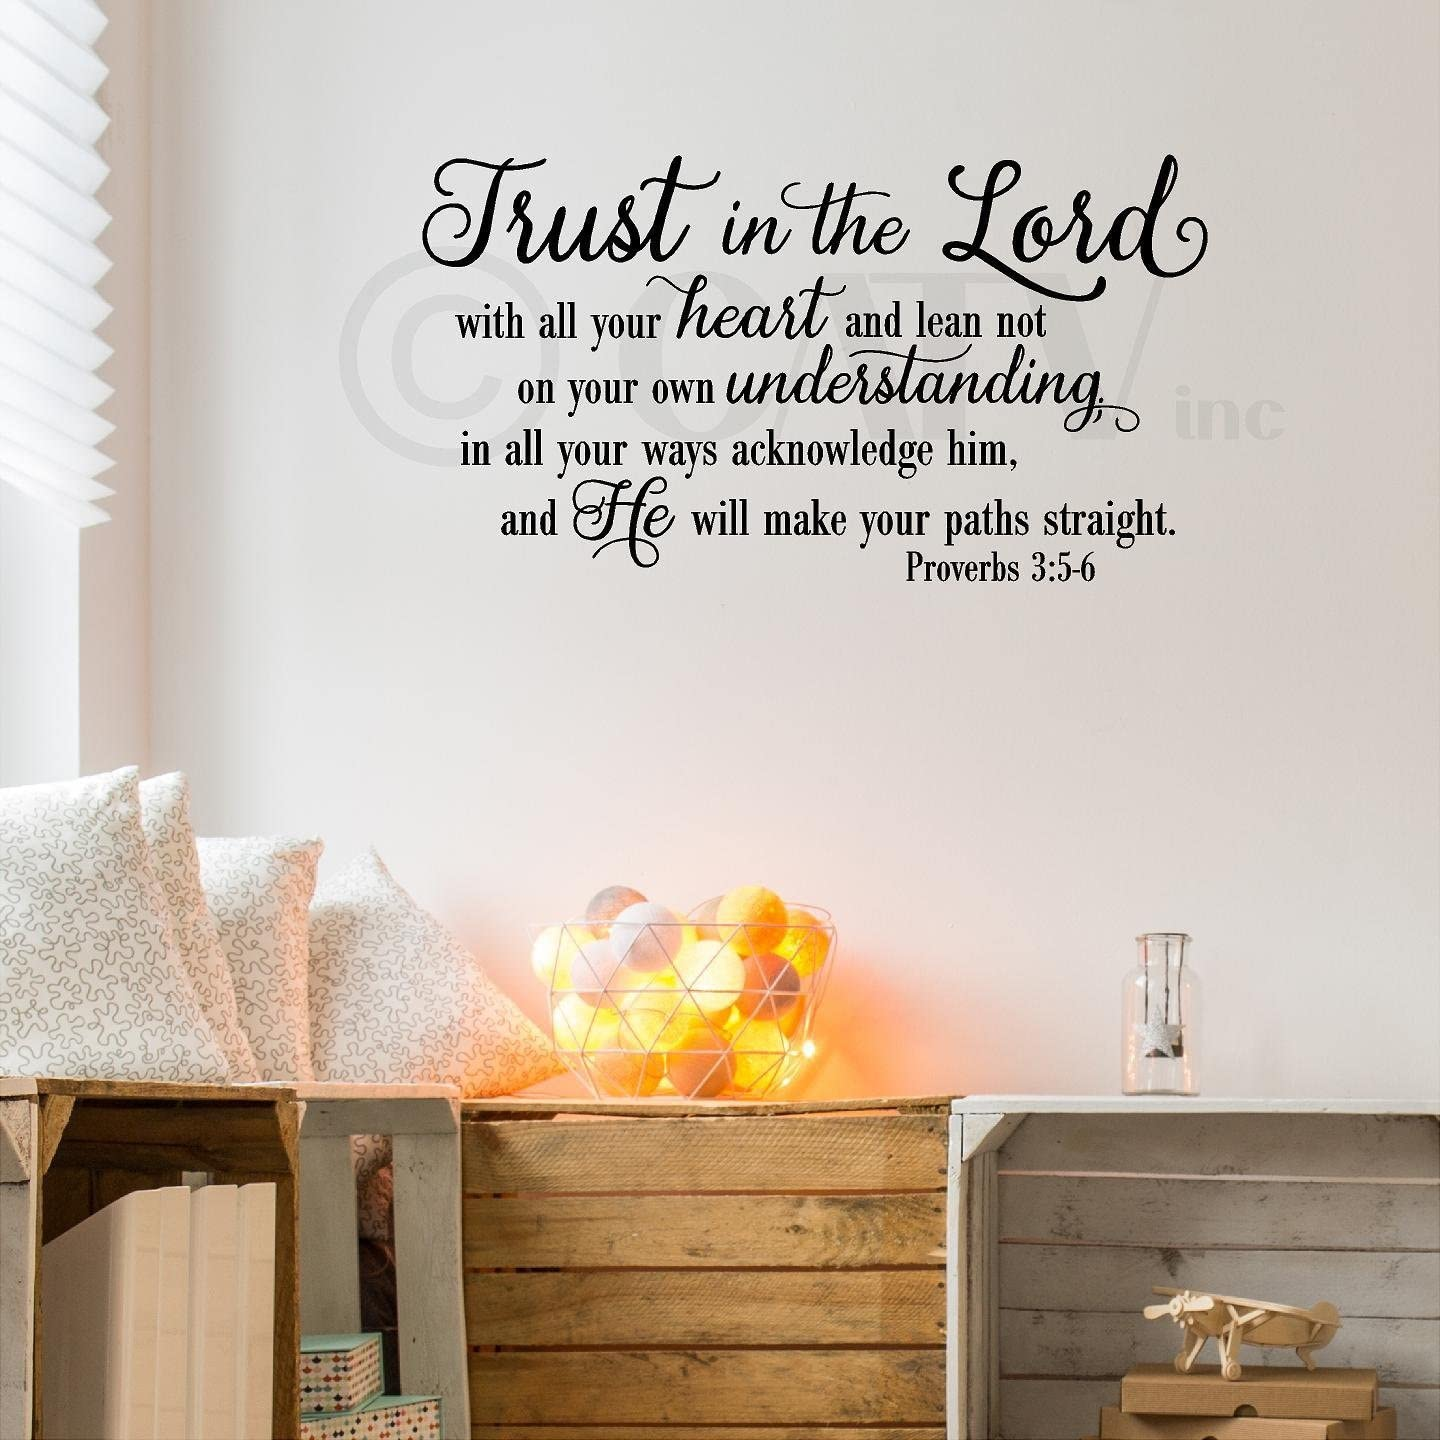 """Trust in the Lord With All Your Heart..Proverbs 3:5-6 Vinyl Lettering Wall Decal Sticker (16.5""""H x 30""""L, Black)"""